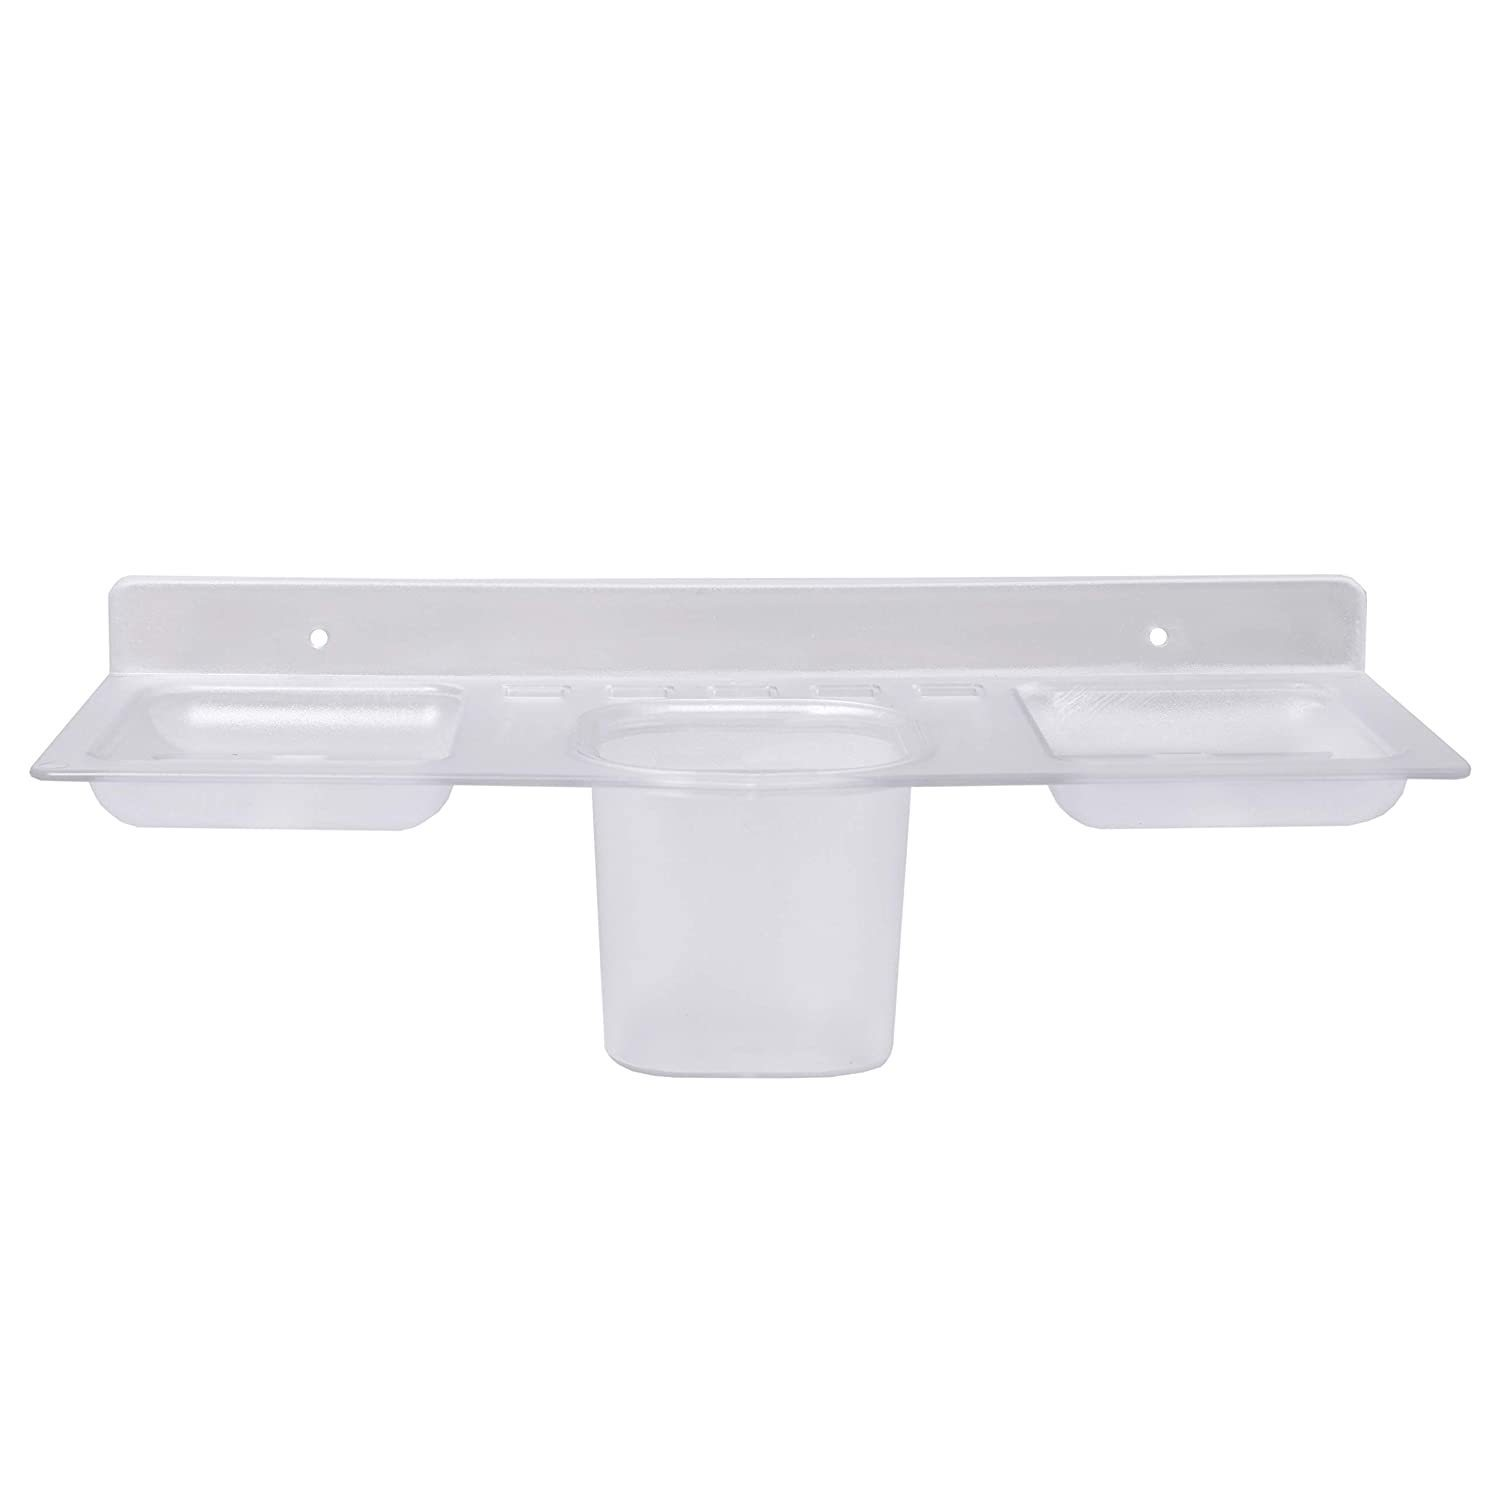 ABS Plastic 4 in 1 Multipurpose Kitchen/Bathroom Shelf/Paste-Brush Stand/Soap Stand/Tumbler Holder/Bathroom Accessories - Unnati Enterprises